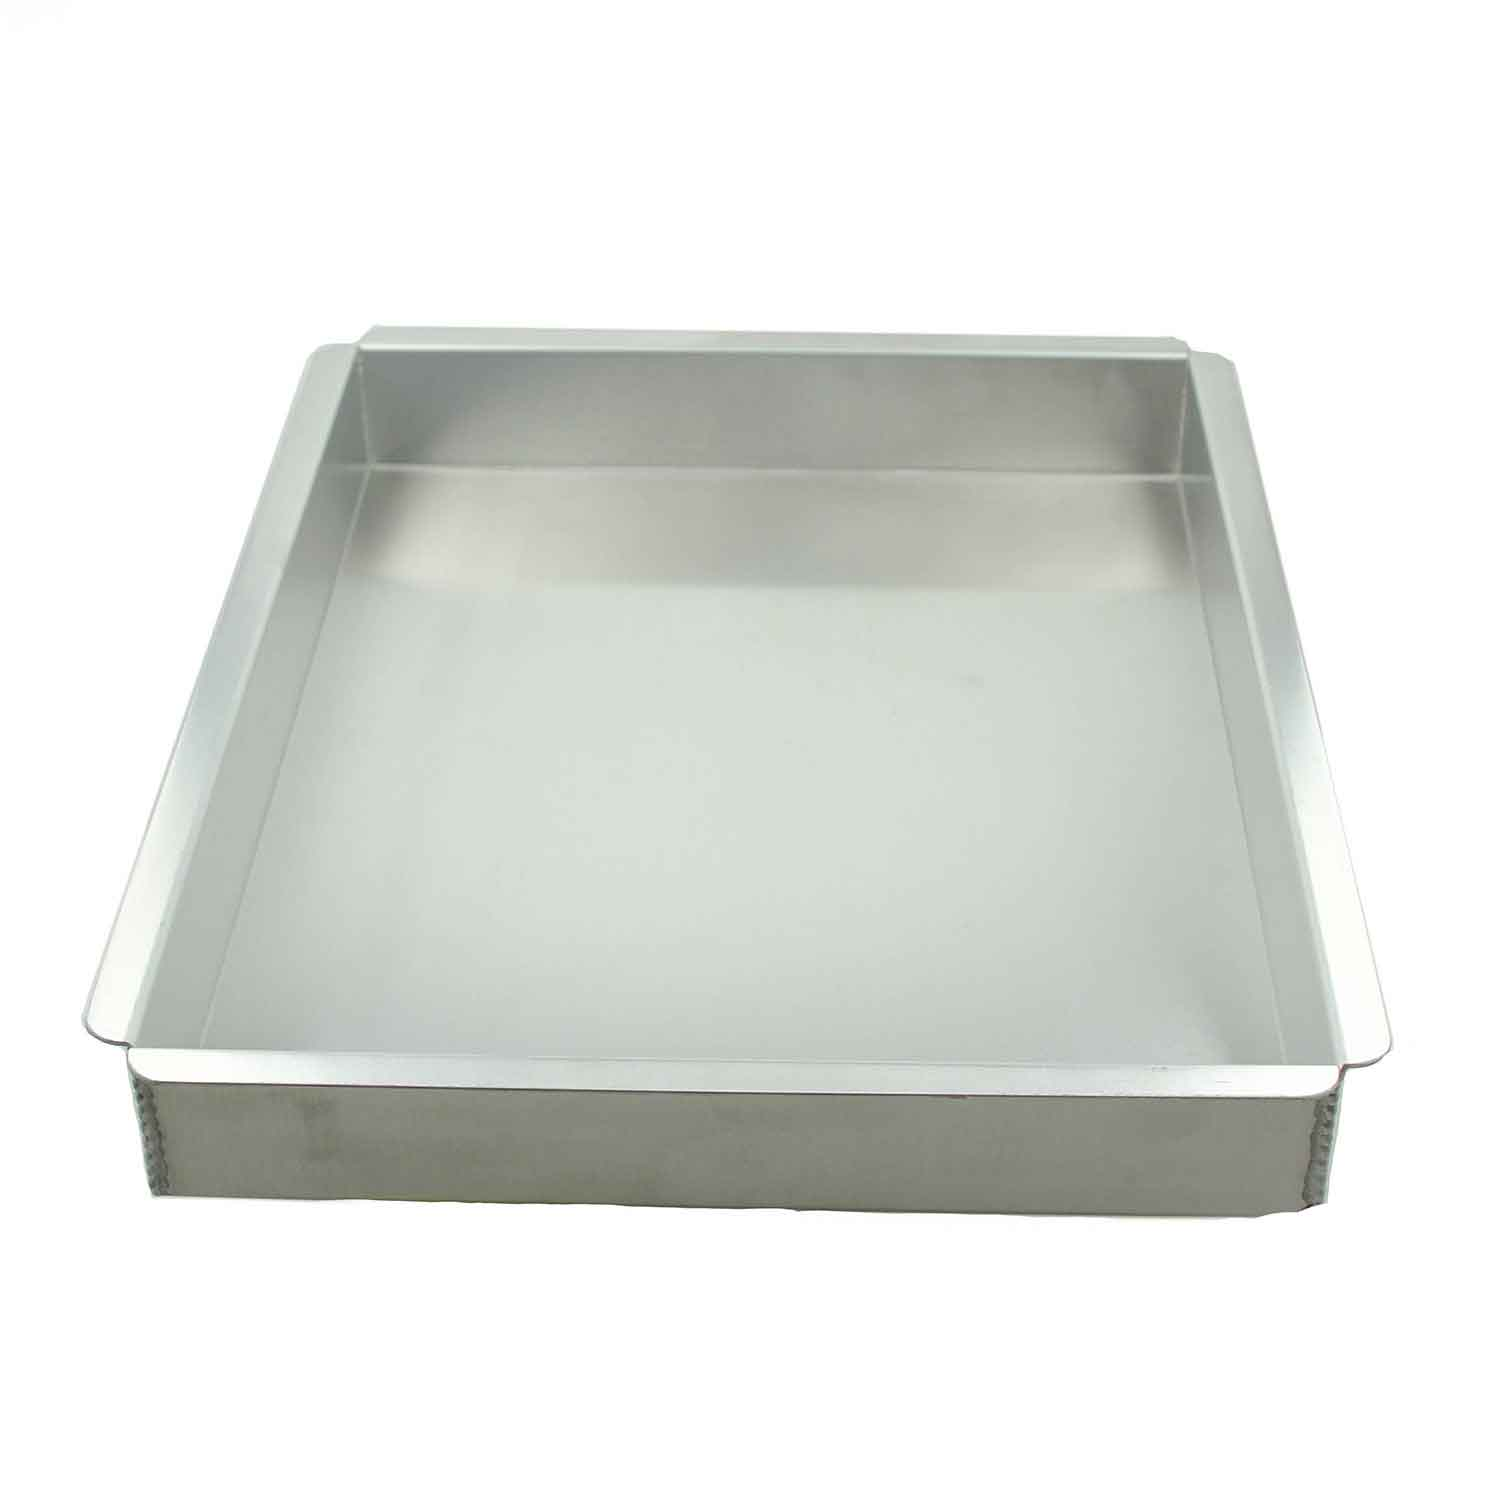 "12 X 16 x 2"" Magic Line Half Sheet Cake Pan"